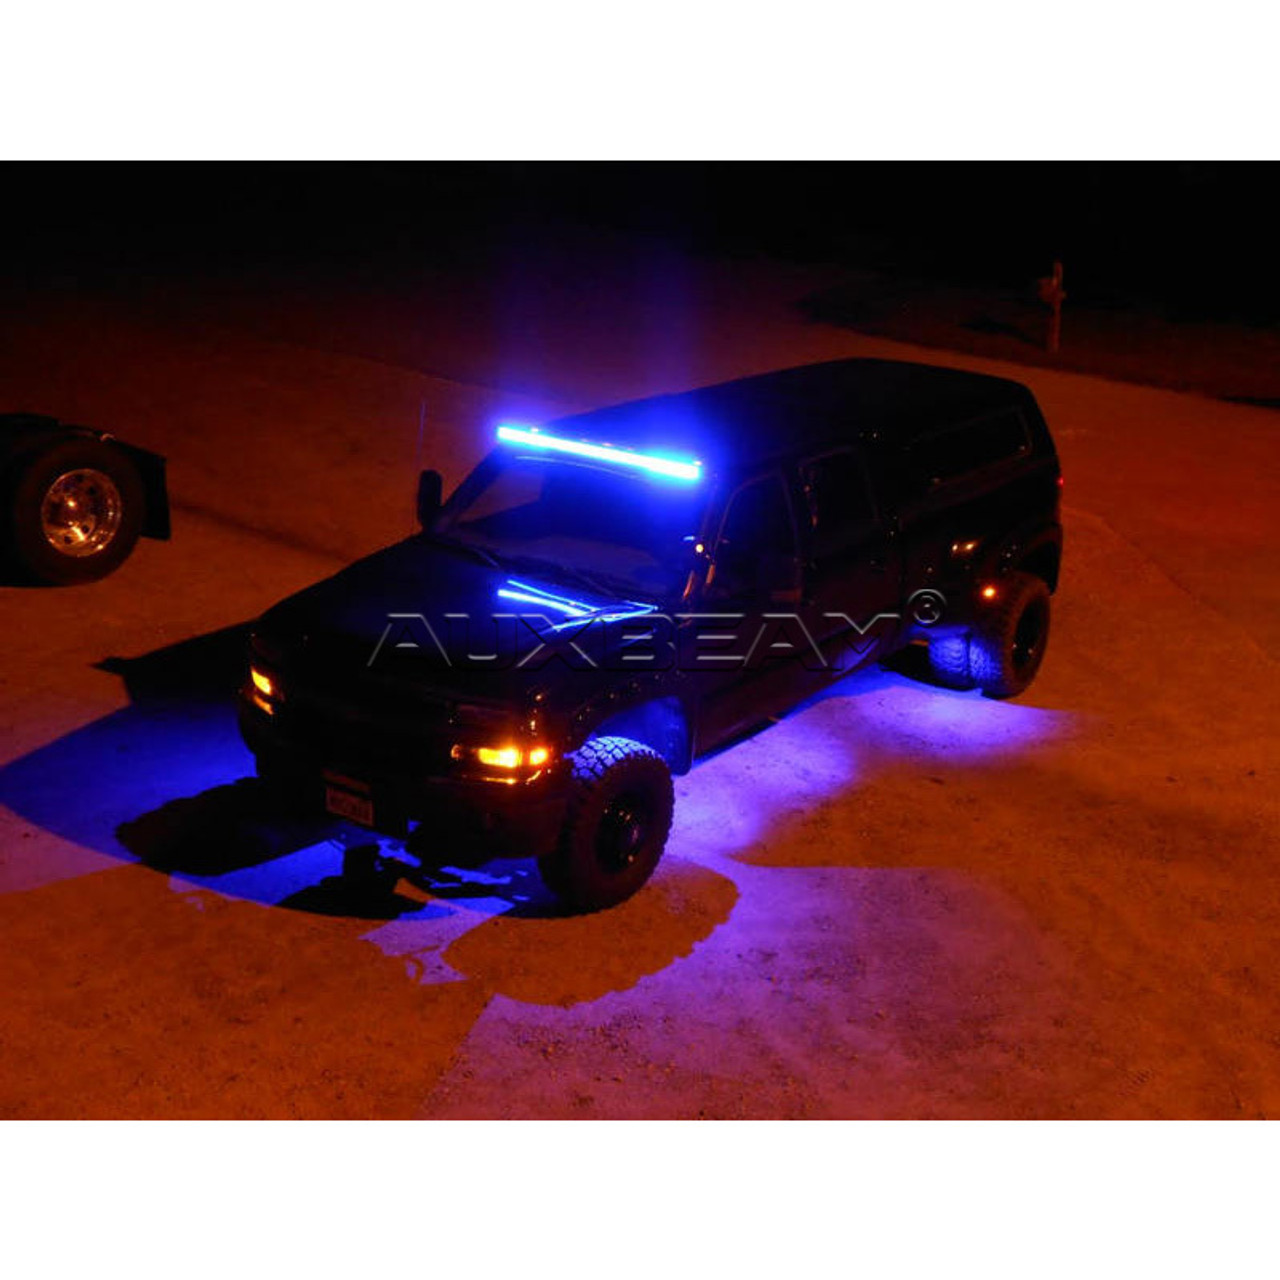 Auxbeam v series 22 120w combo curved rgb led light bar 5d auxbeam v series 22 120w combo curved rgb led light bar 5d projector aloadofball Gallery